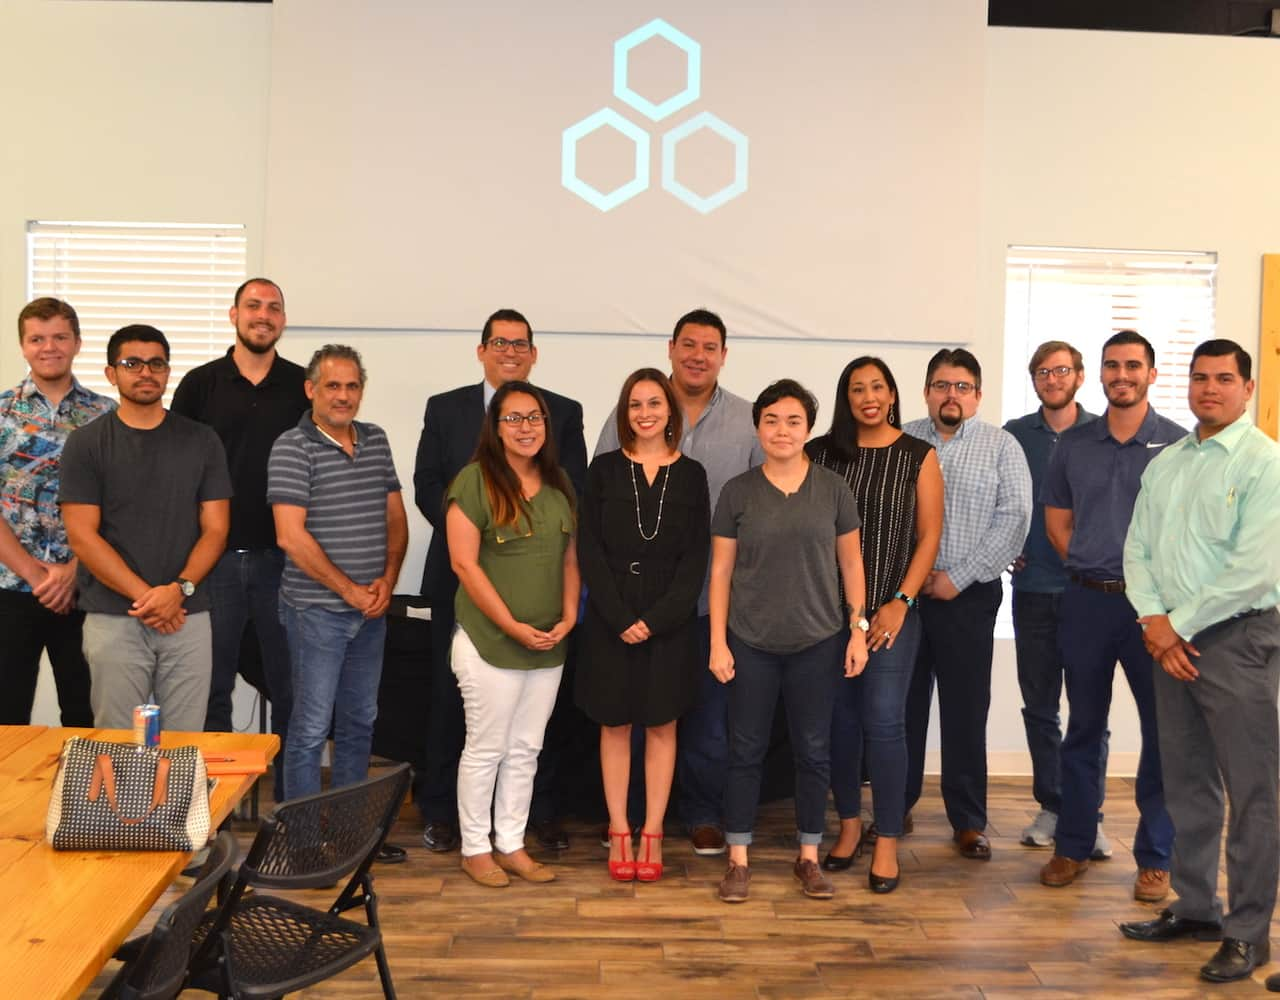 Edinburg EDC, Grindstone Coworking announce second class, of 15 individuals, for Hive Effect, which prepares small business owners to succeed